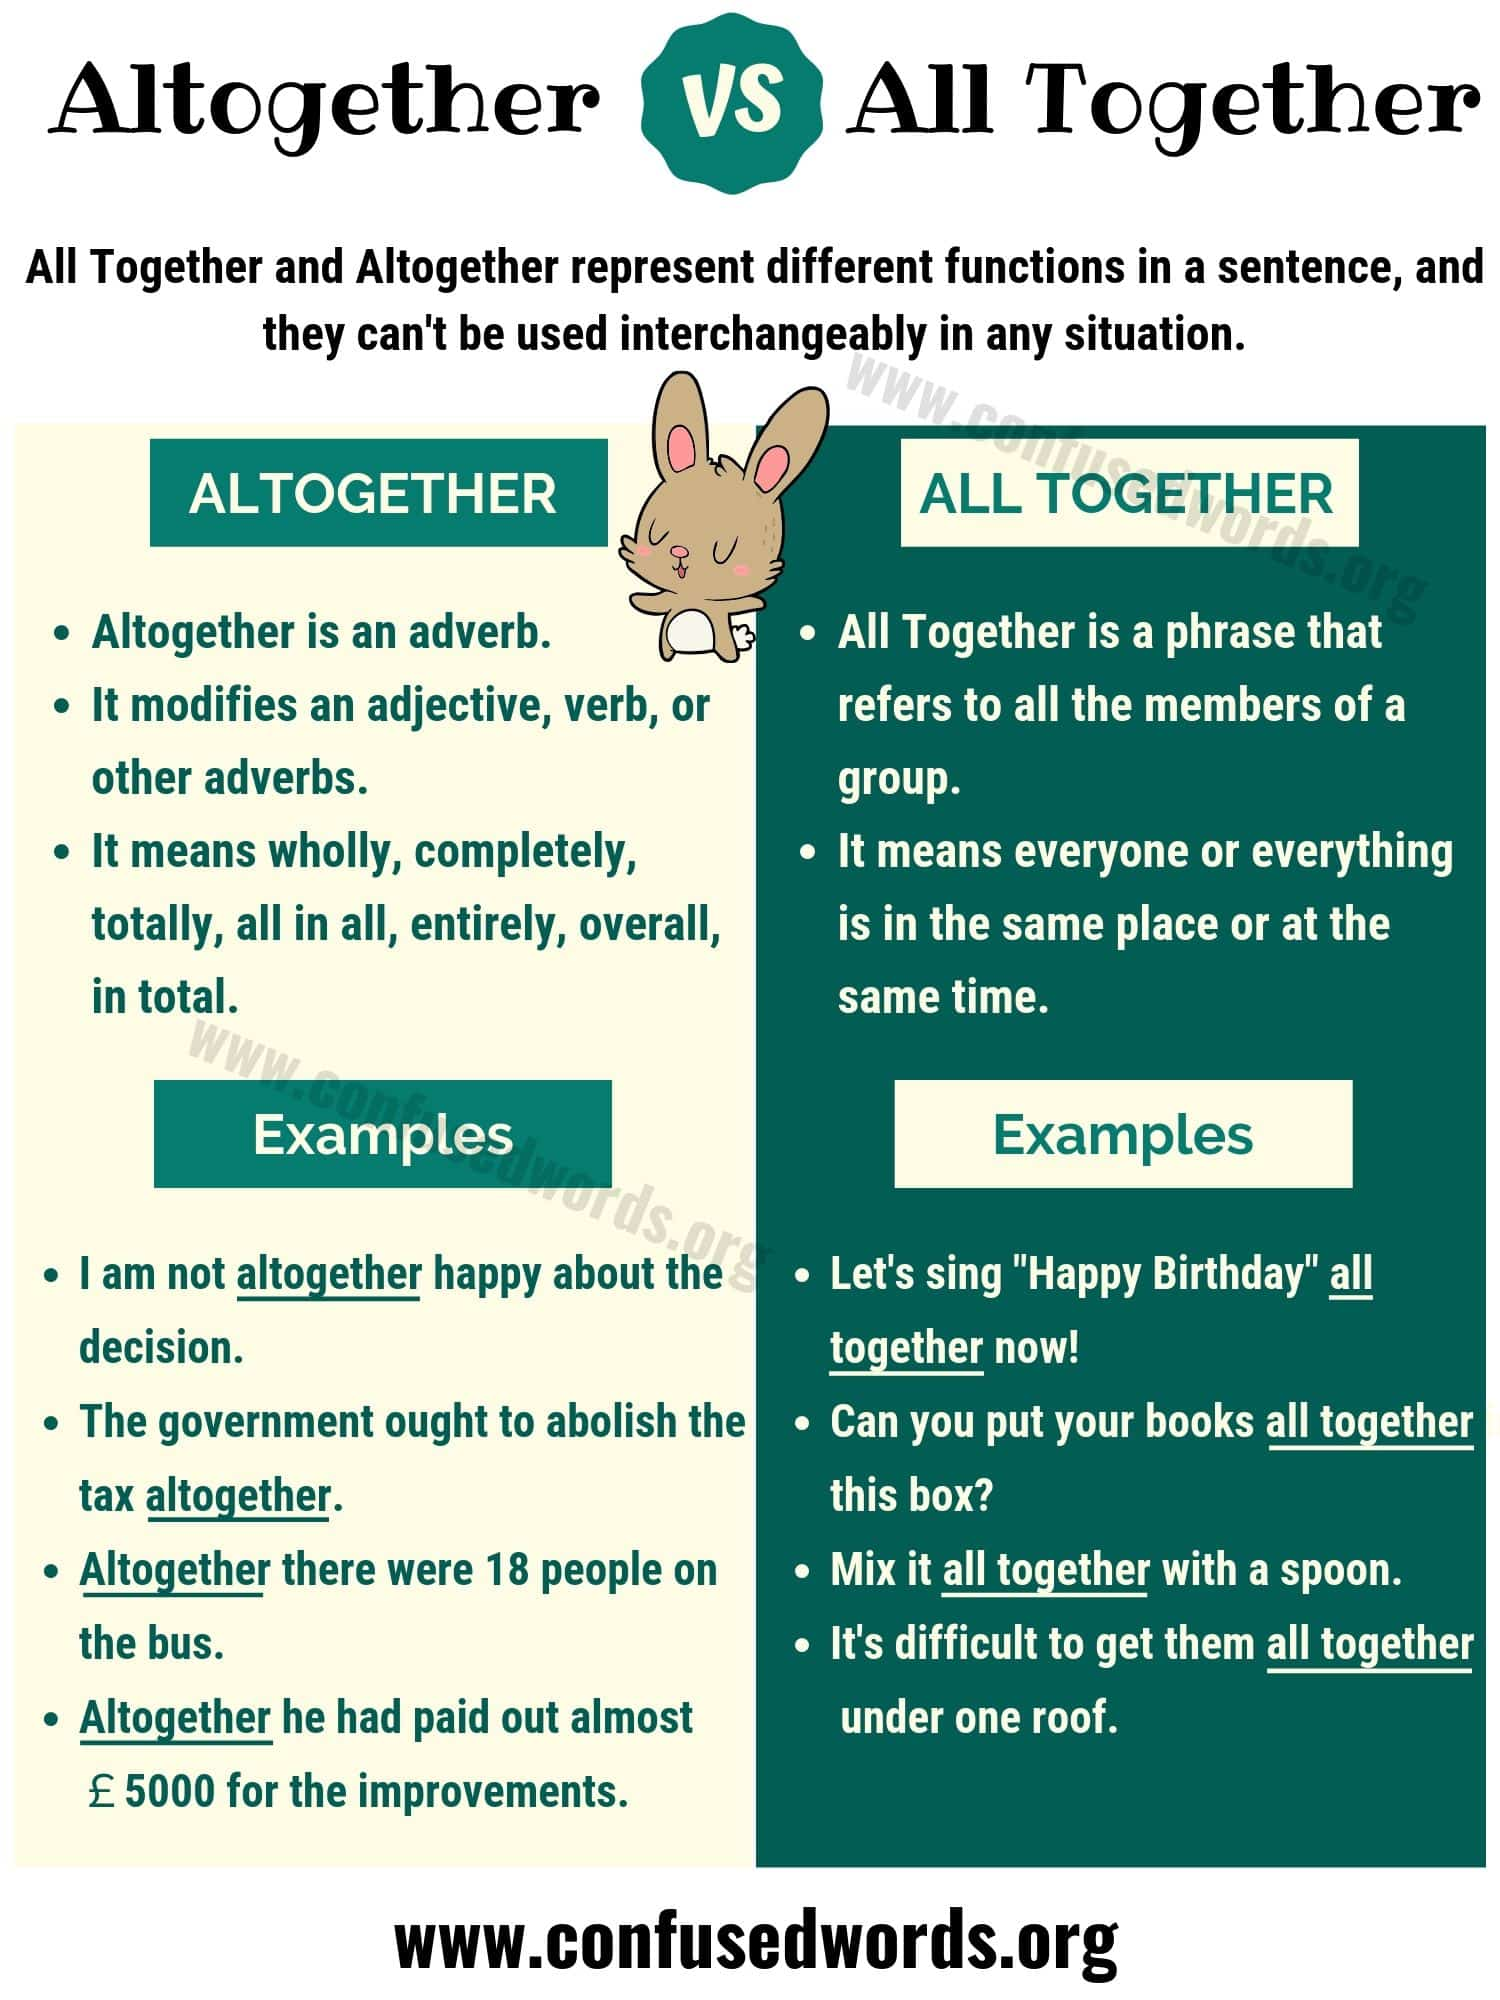 Altogether vs All Together